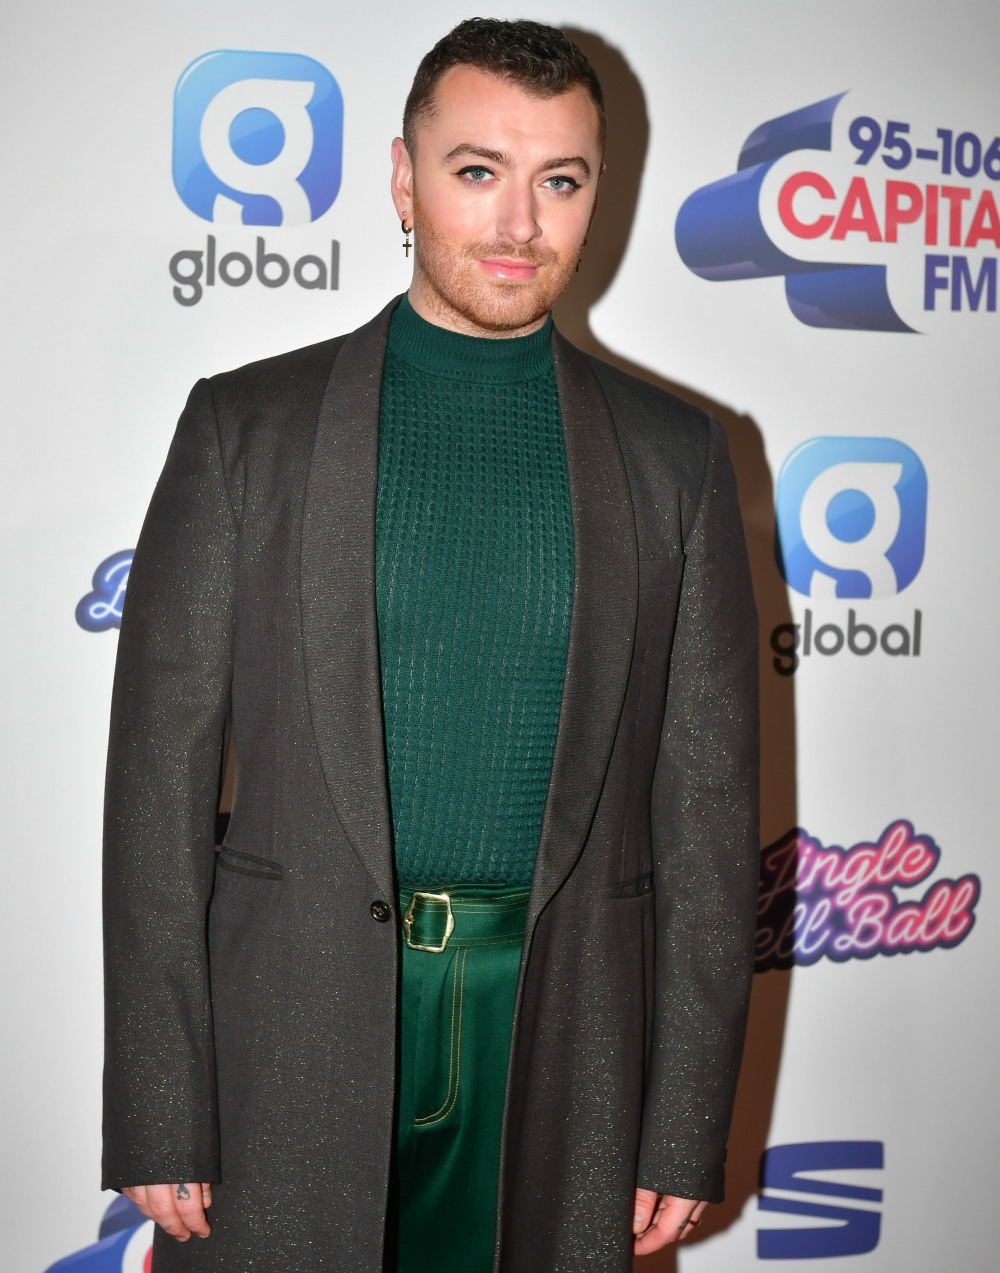 Sam Smith on the red carpet at the Capital FM Jingle Bell Ball, O2 Arena, London